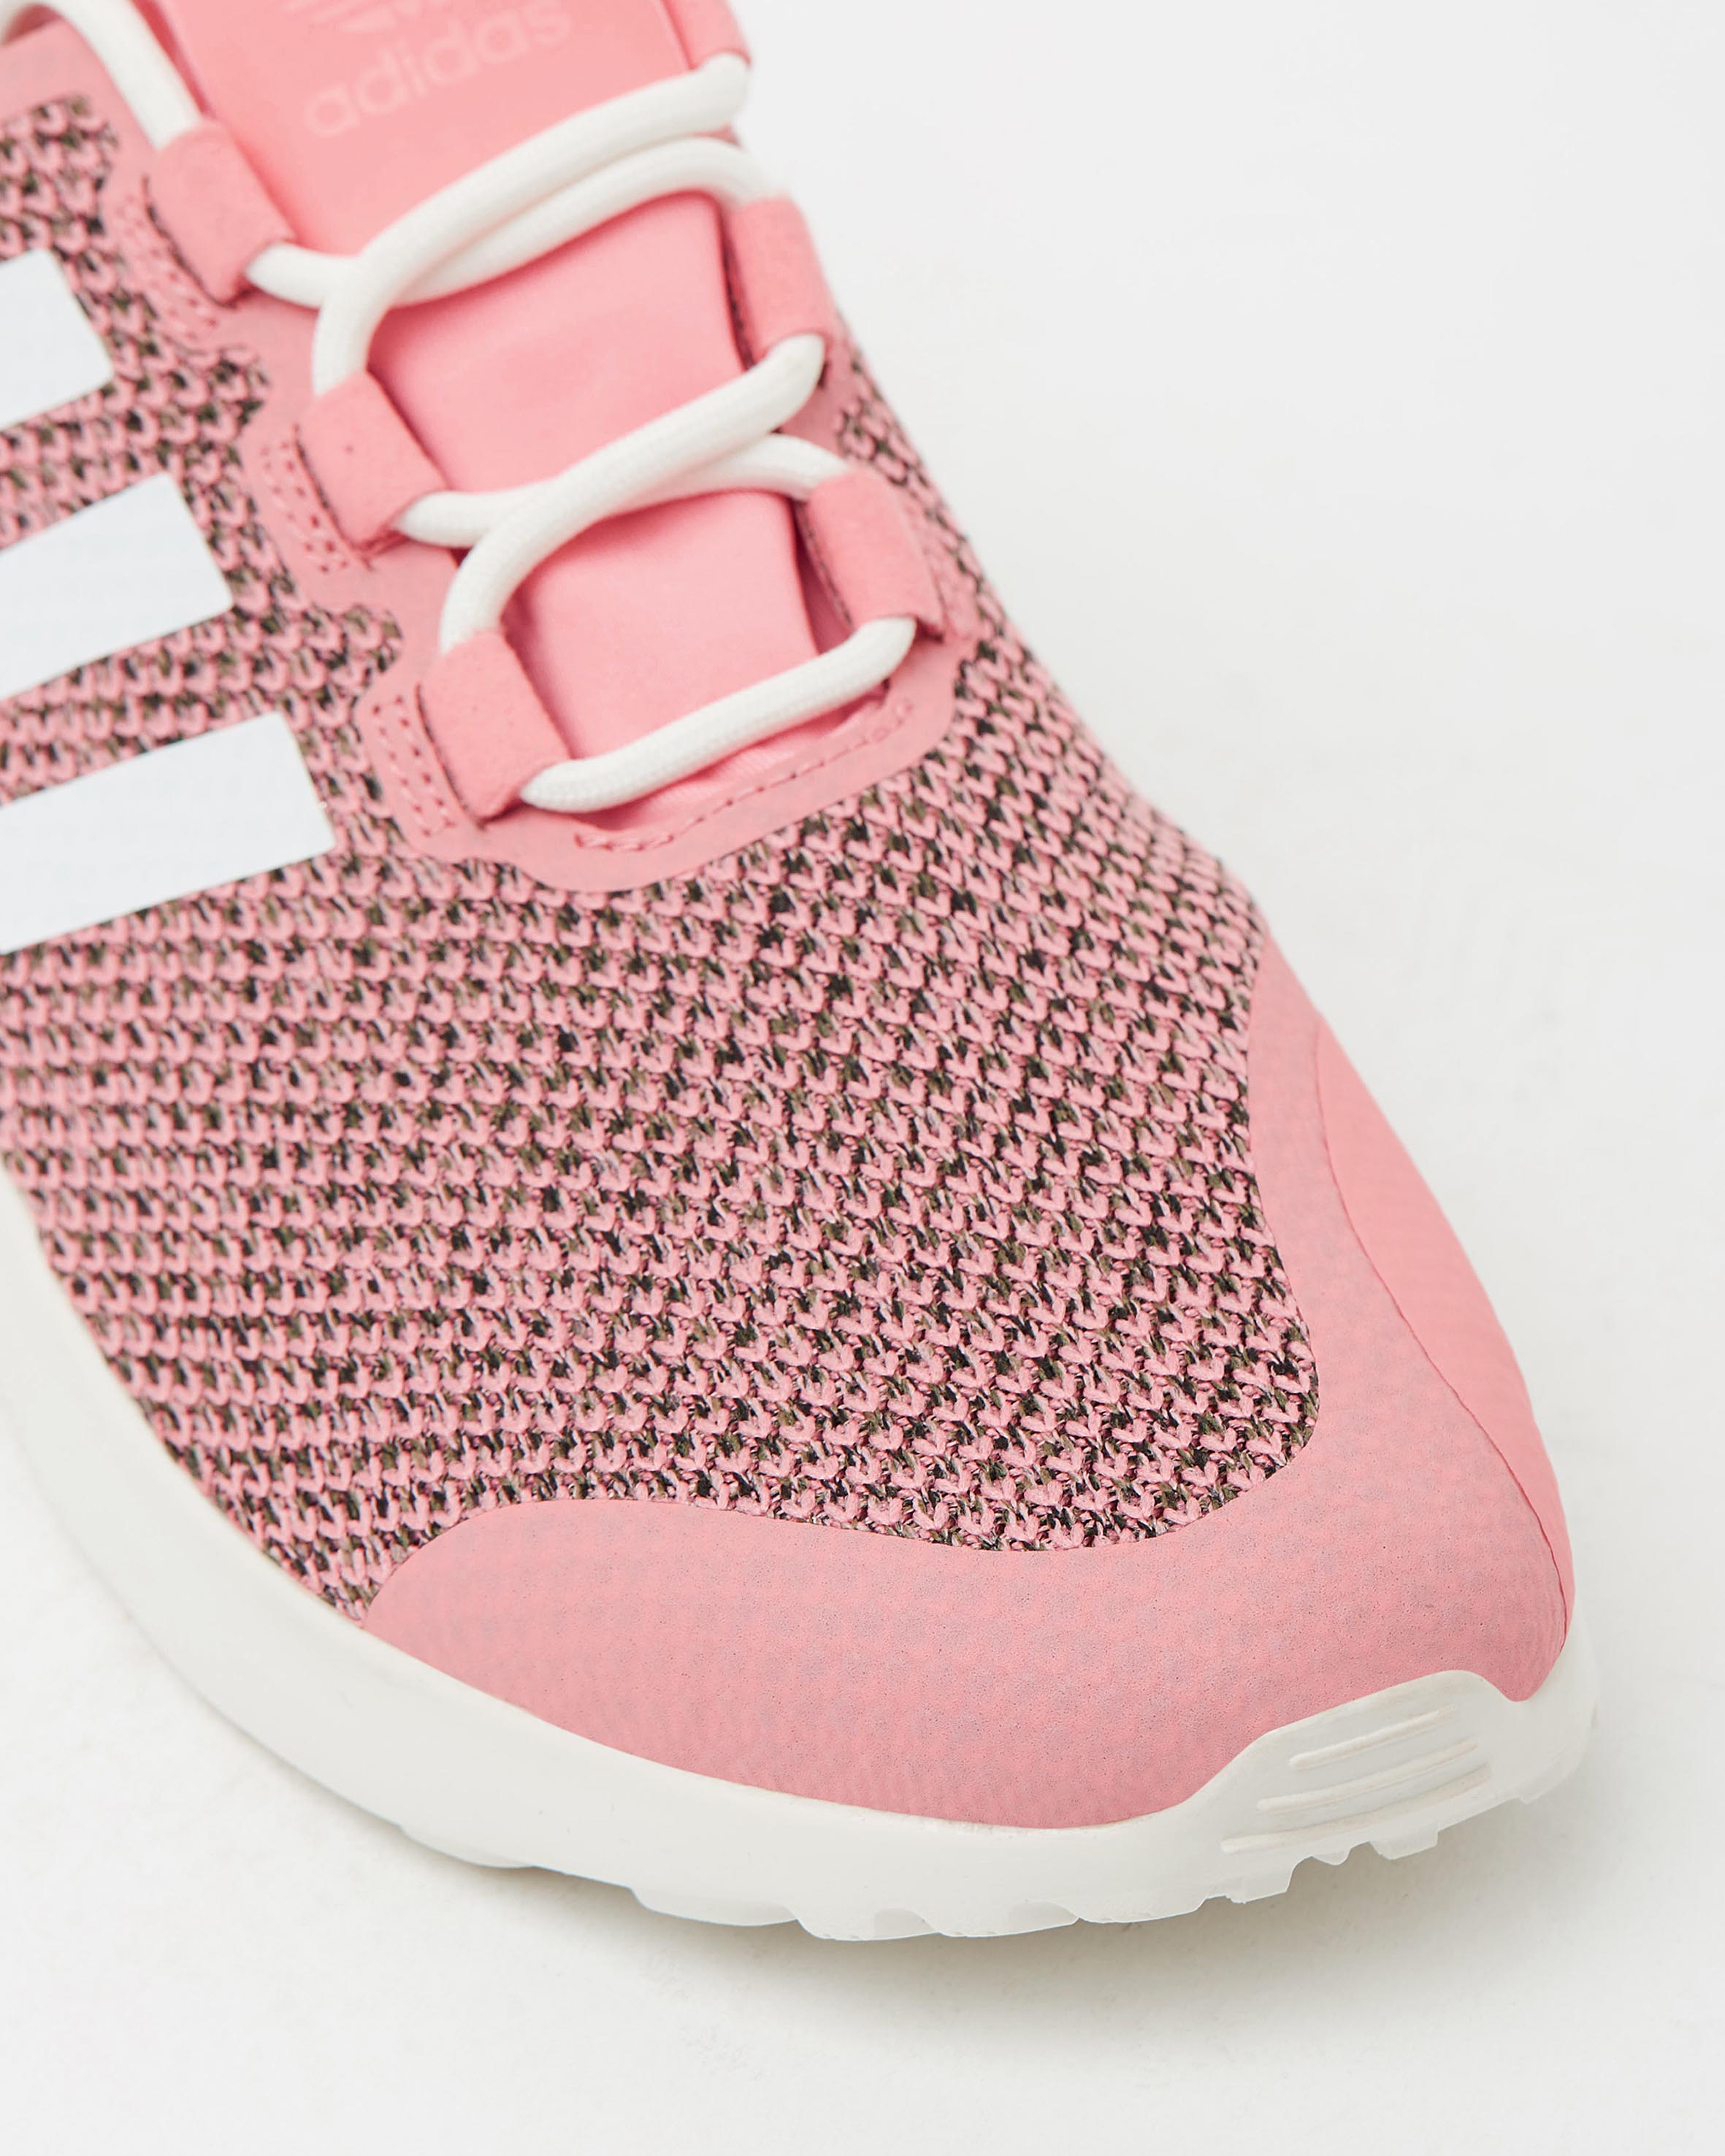 77ad23df49ae2 Adidas Zx Flux Adv Verve Pink softwaretutor.co.uk